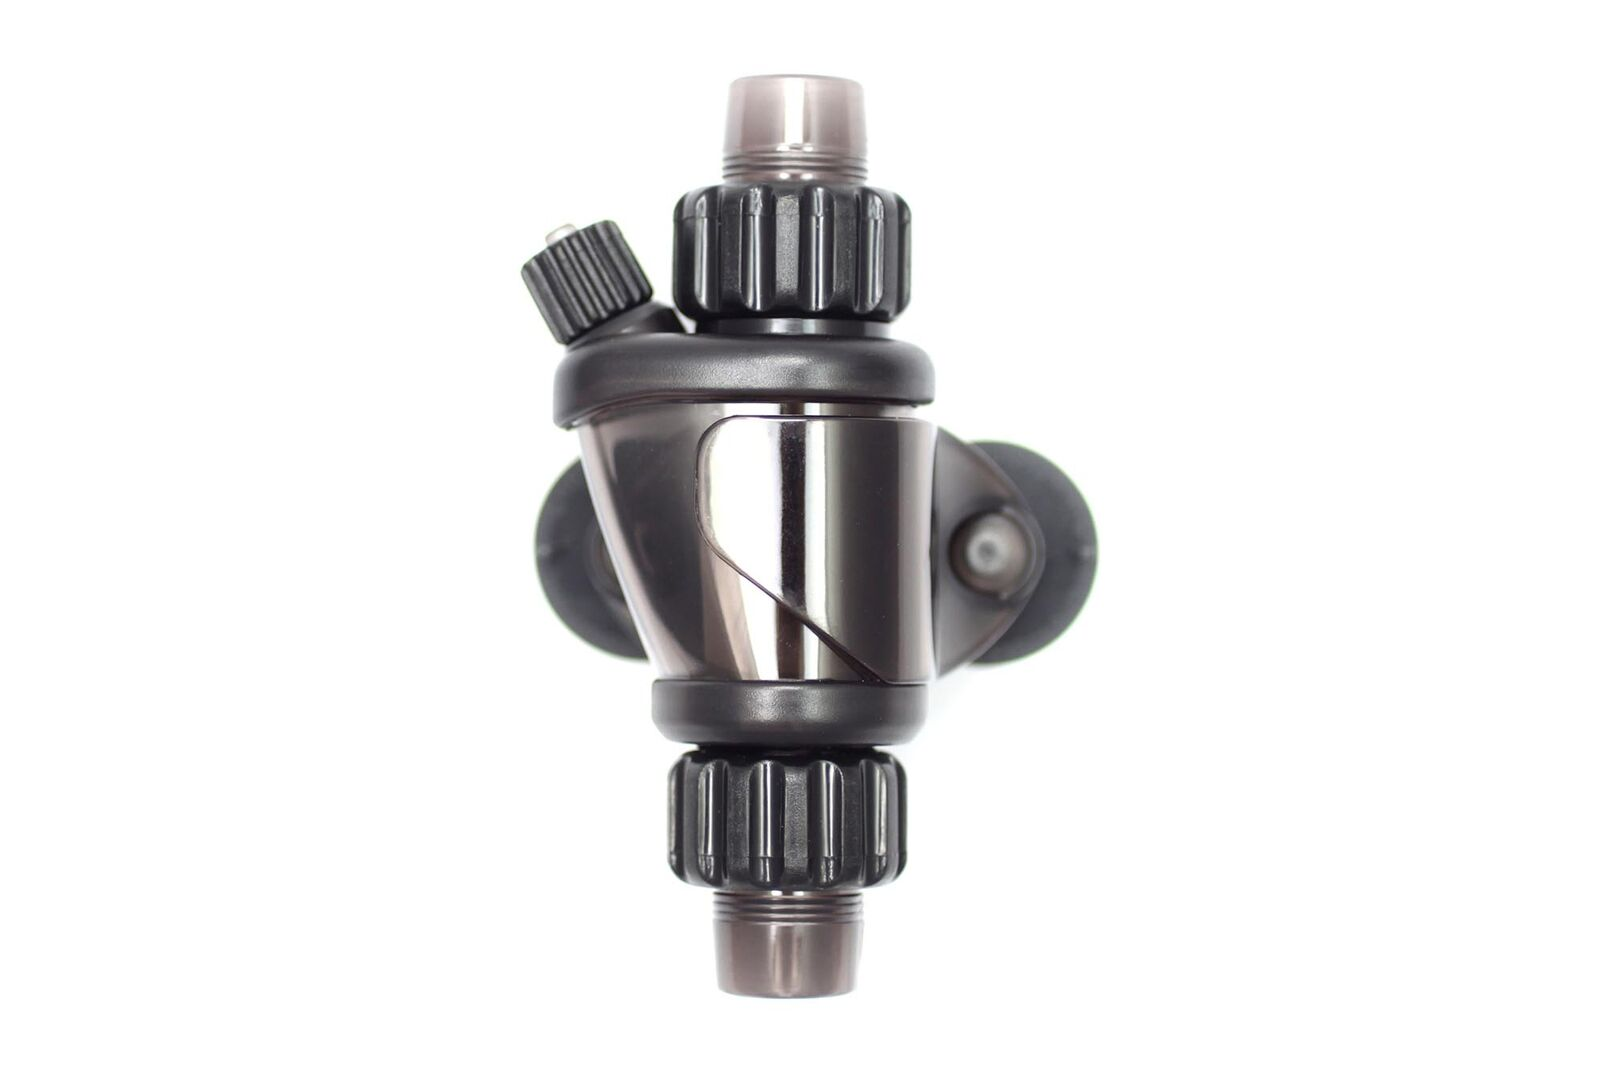 UP Inline Atomizer CO2 Diffuser - For Ø17 16/22mm Hose